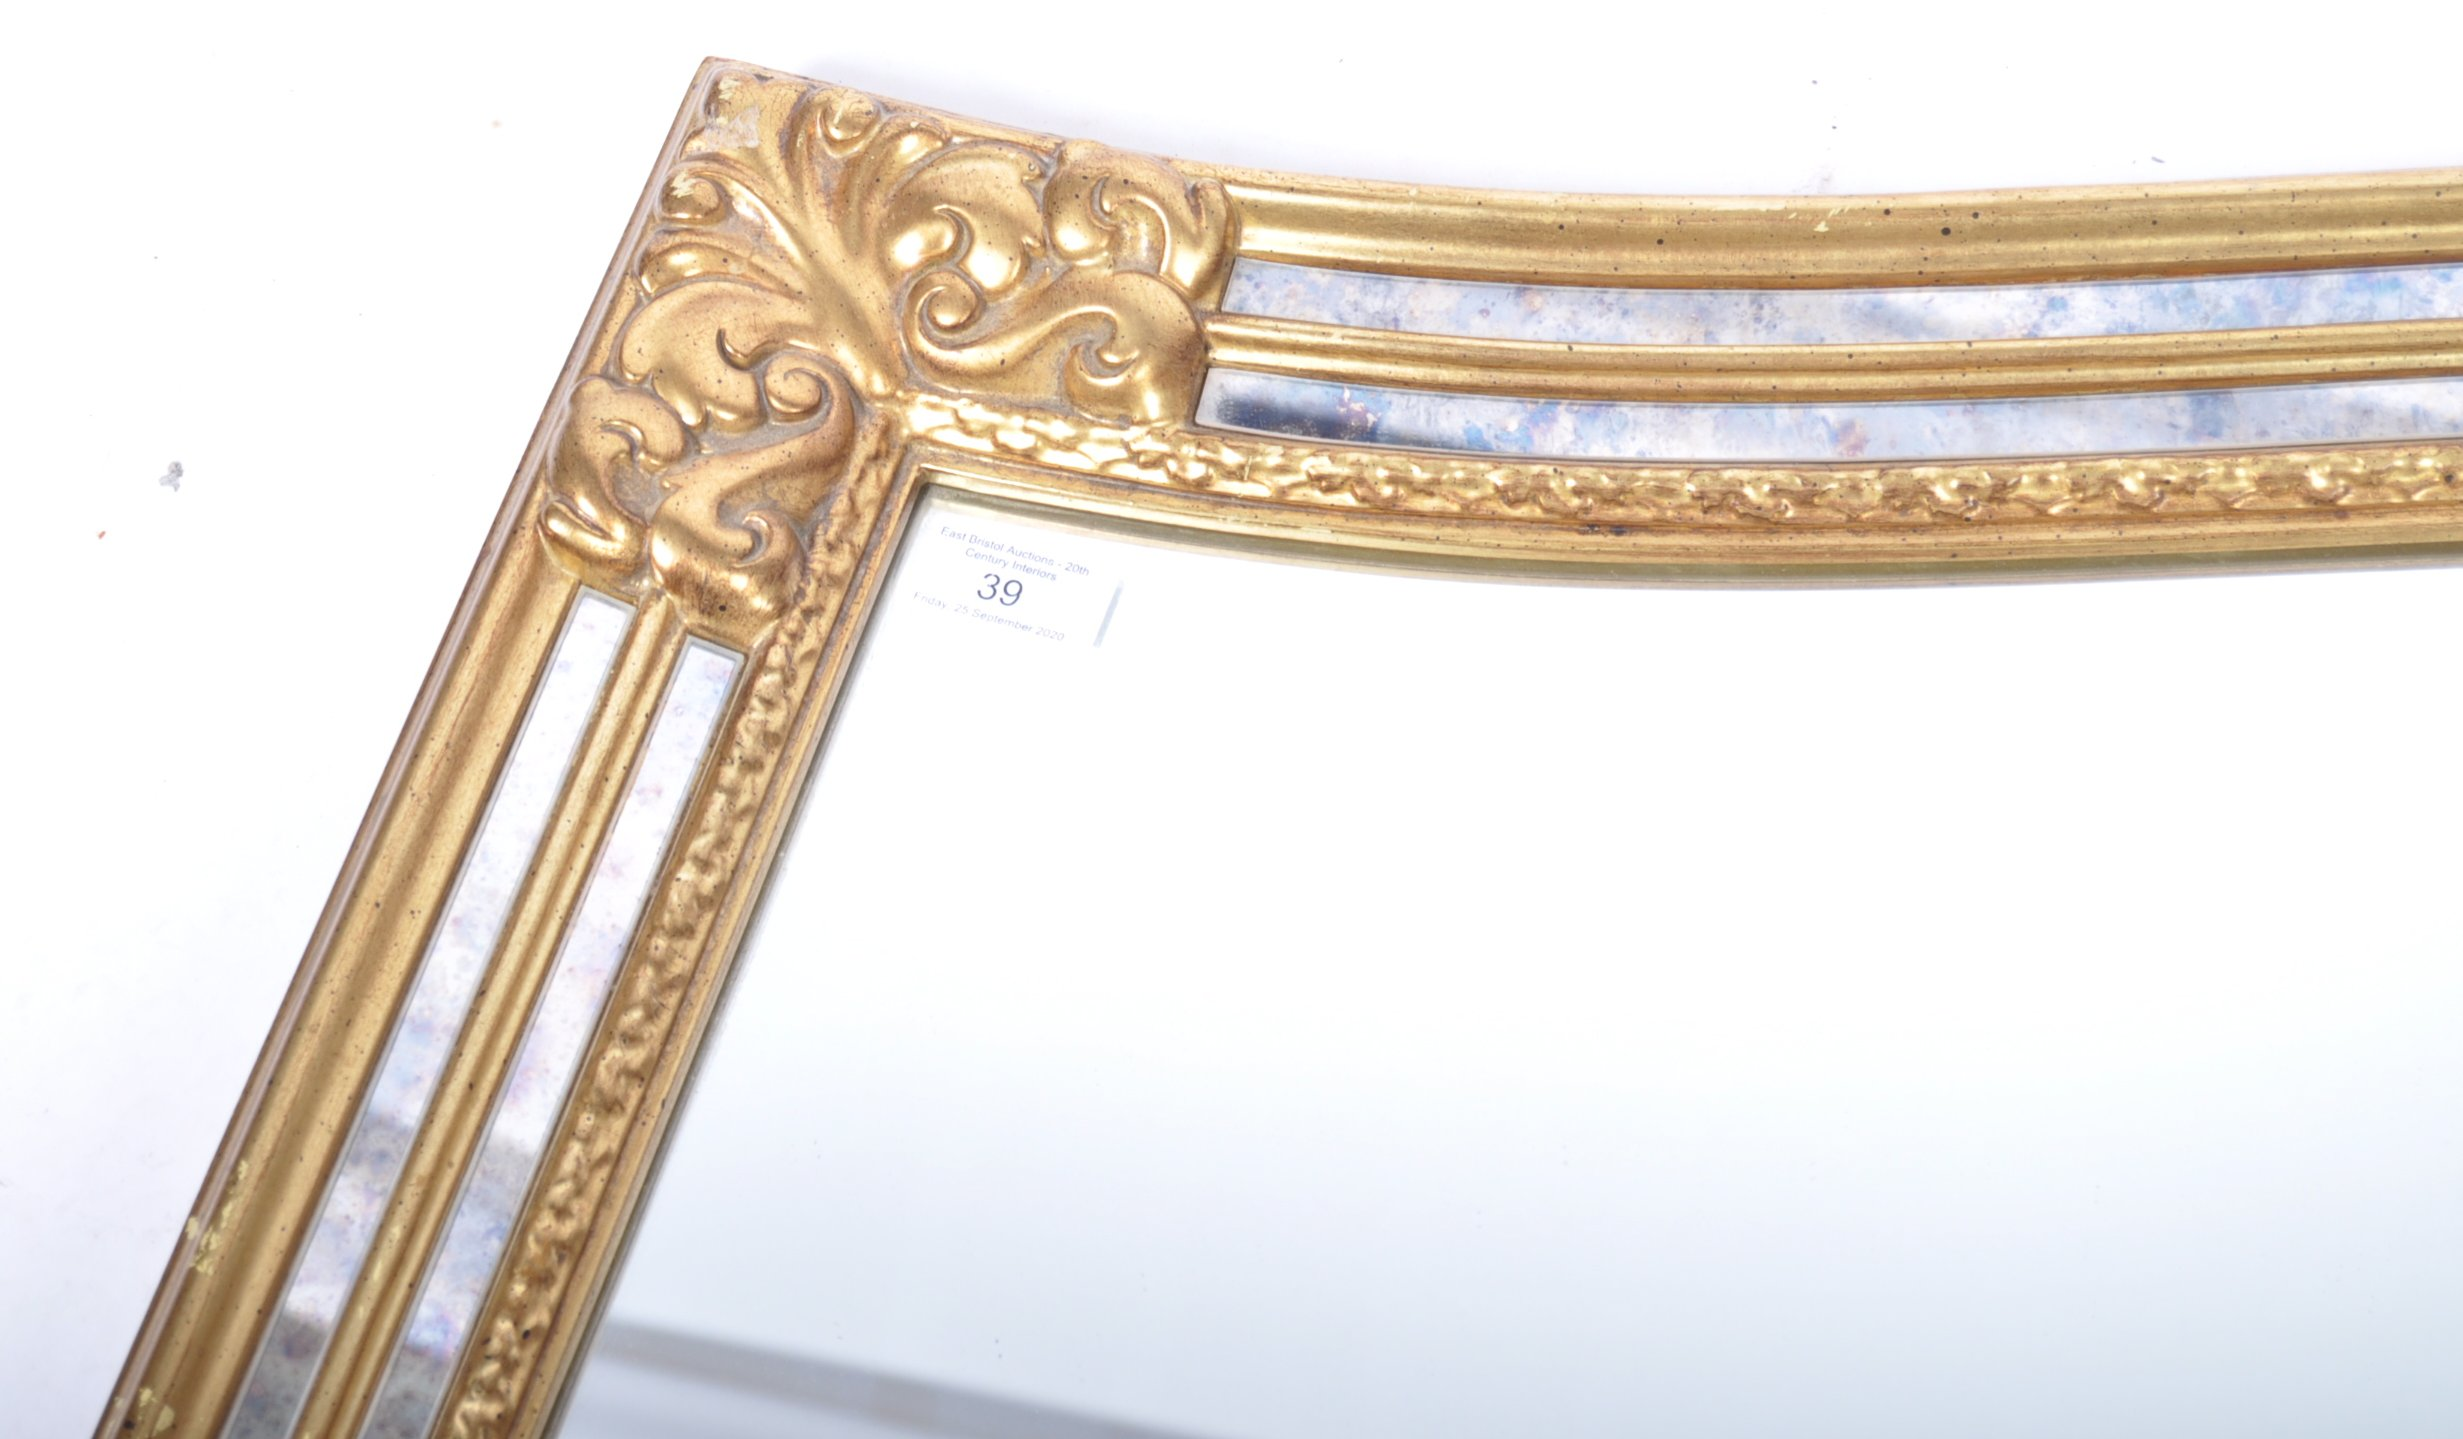 CONTEMPORARY ANTIQUE STYLE GILT FRAMED WALL HANGING MIRROR - Image 4 of 6